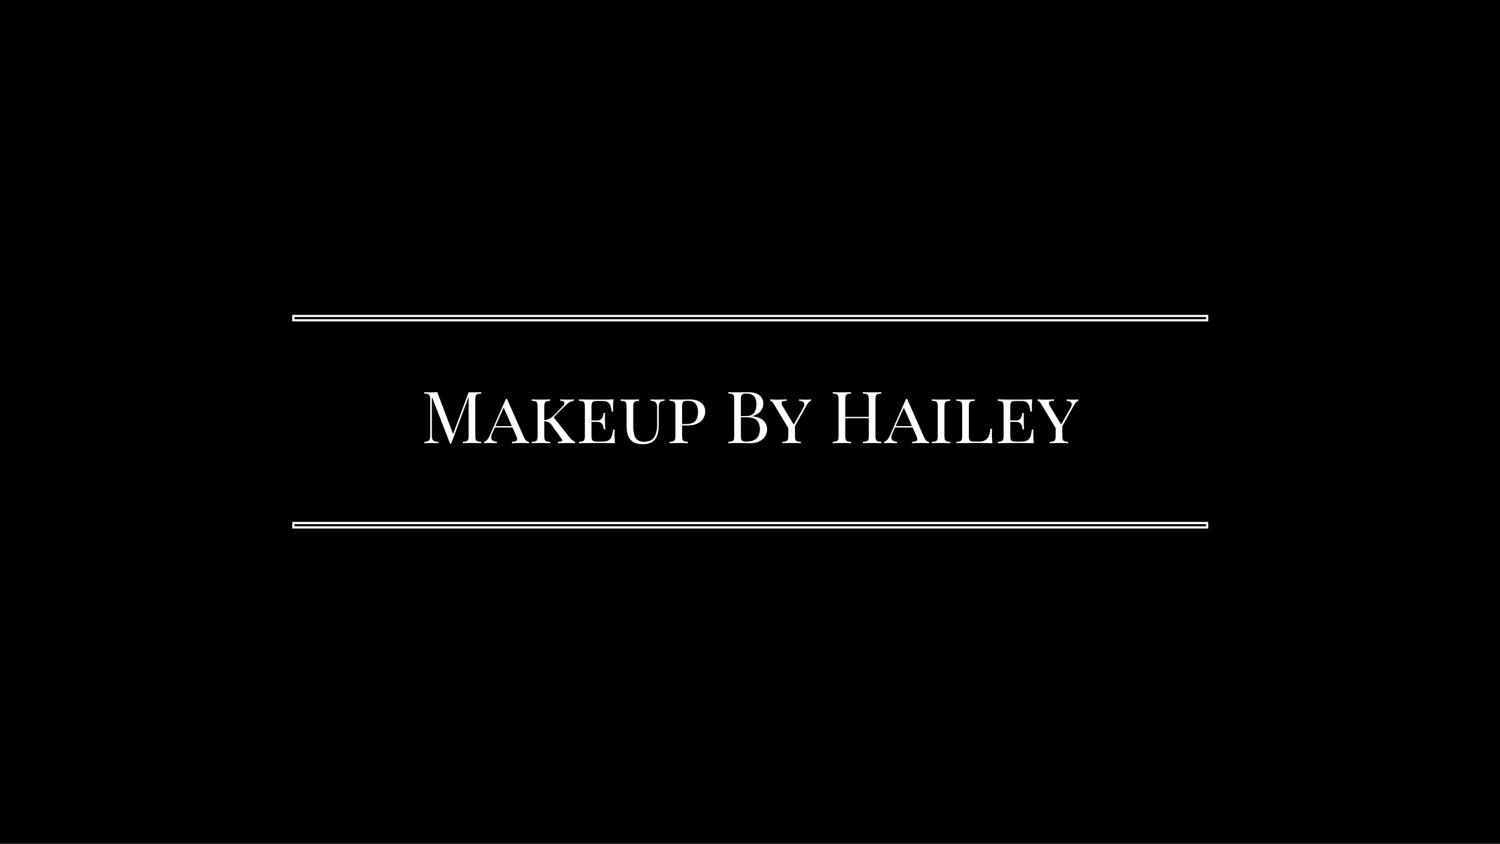 Makeup by Hailey